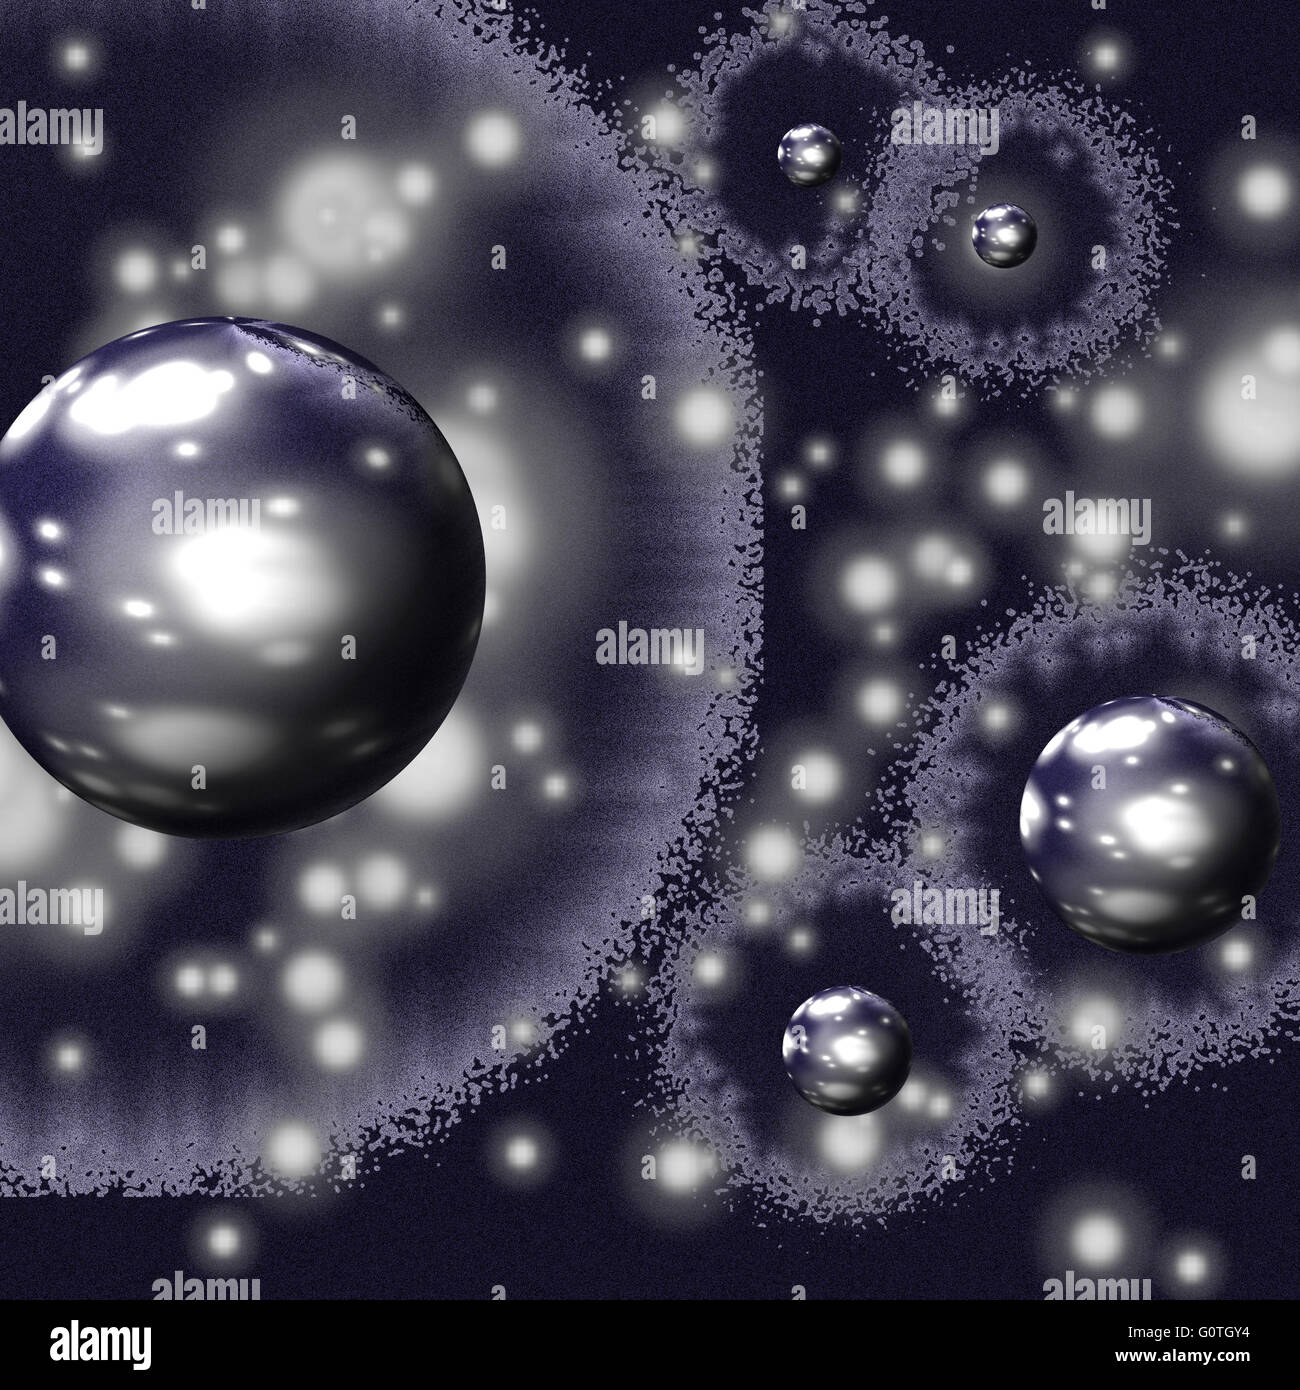 Multiverse Theory - Stock Image